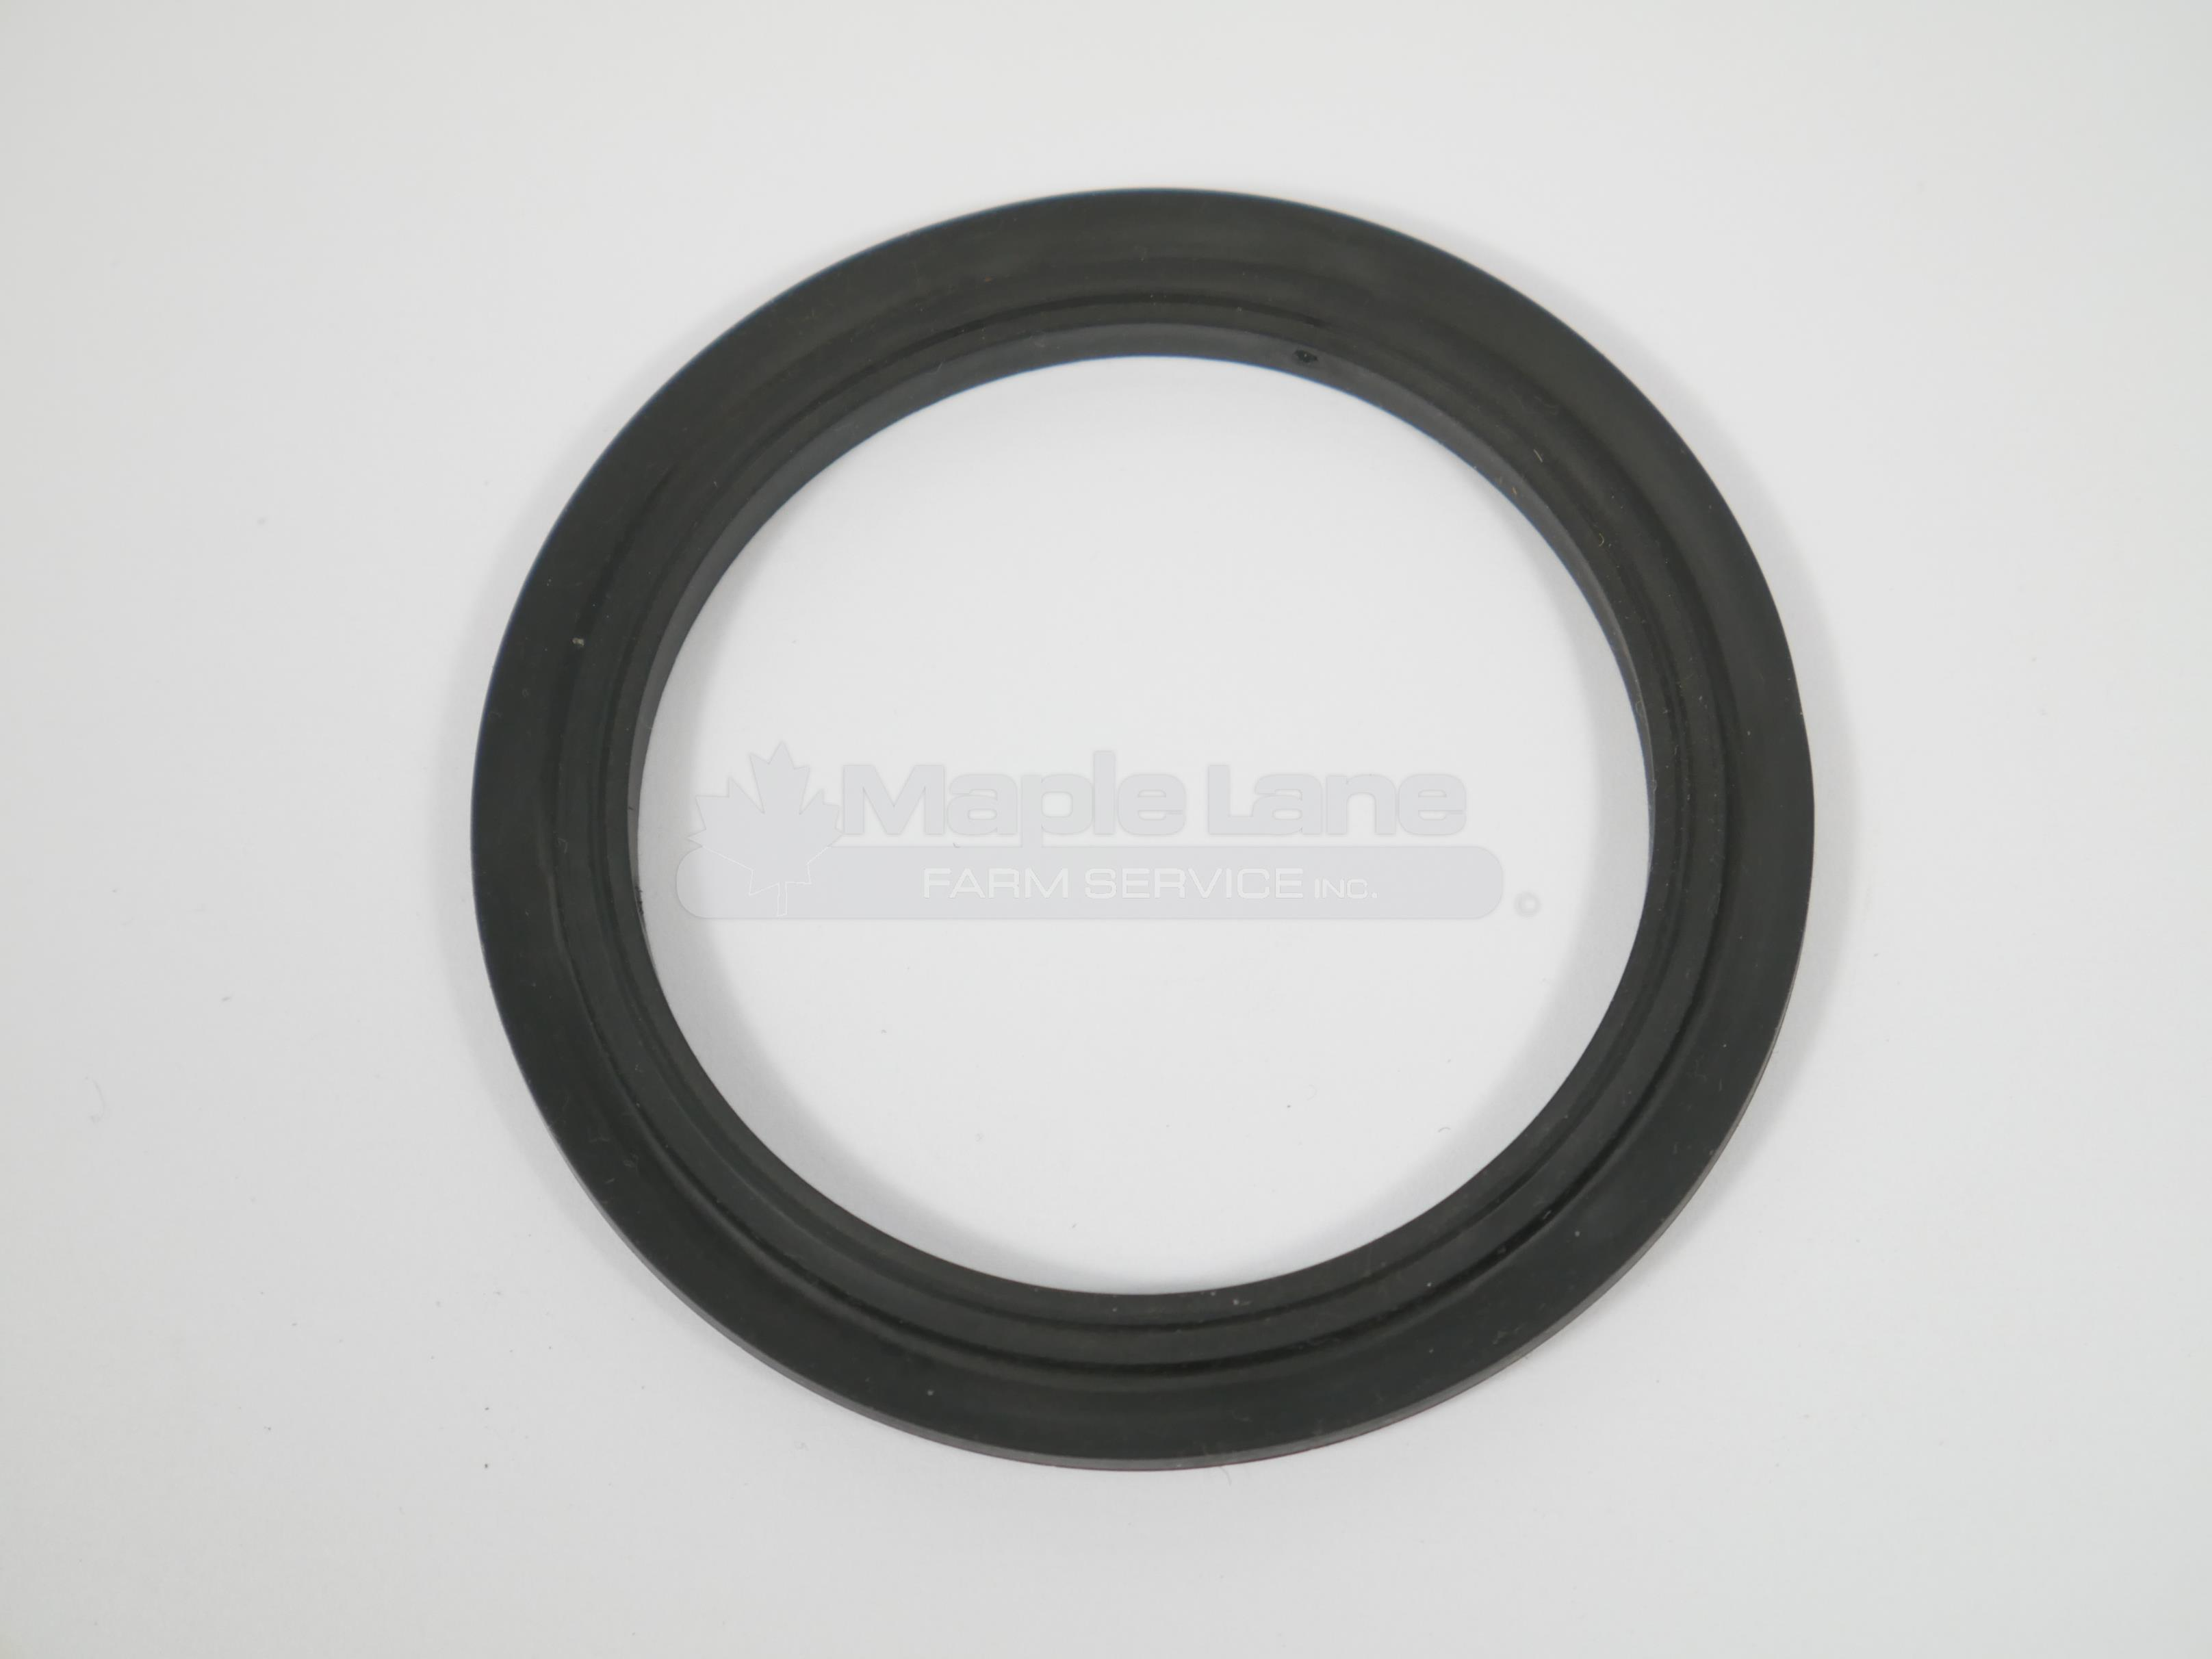 334437 seal for valve flap